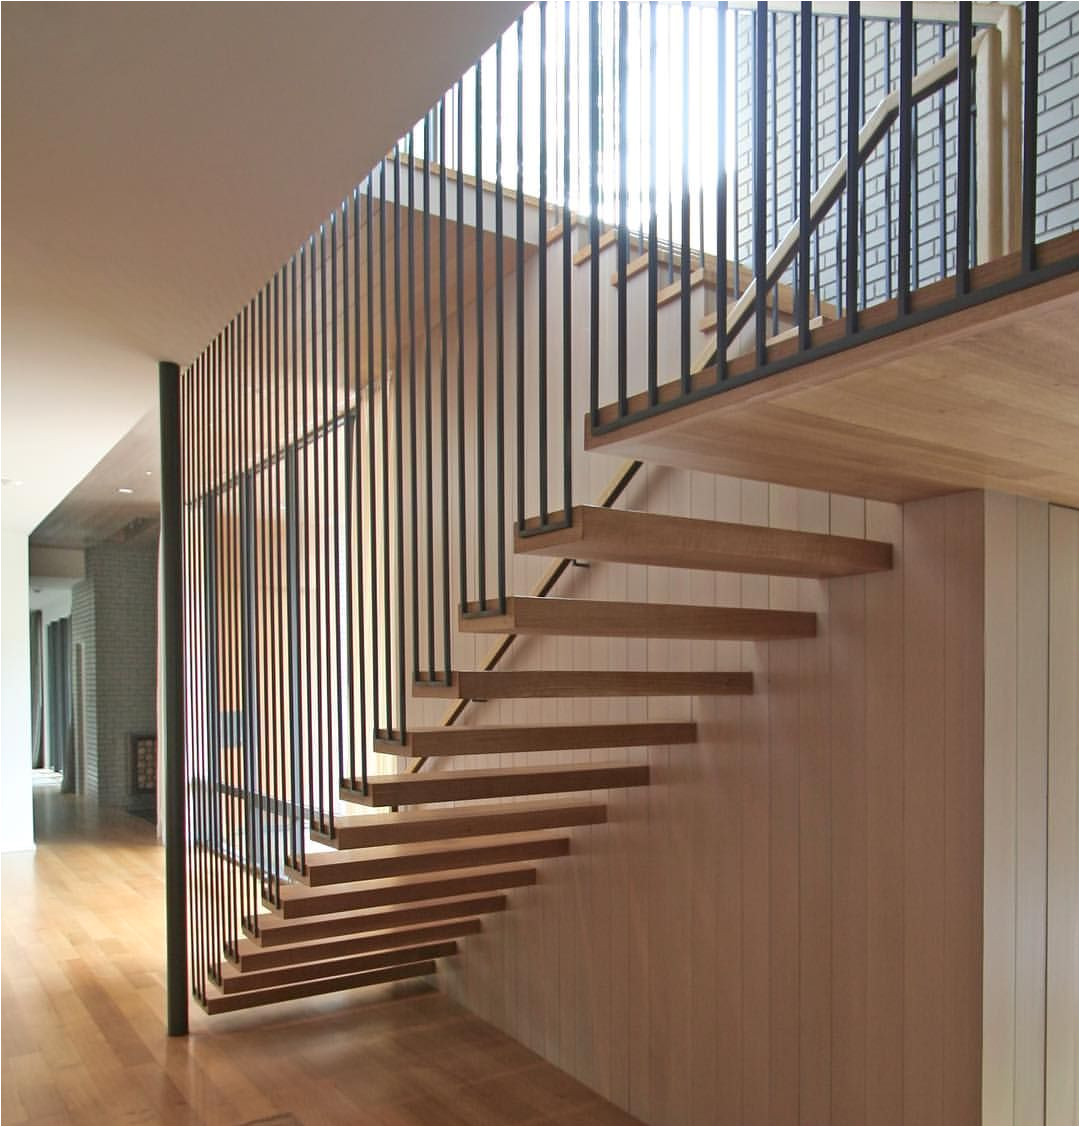 bluffview residence stair tensioned steel white oak via smitharcarchitects